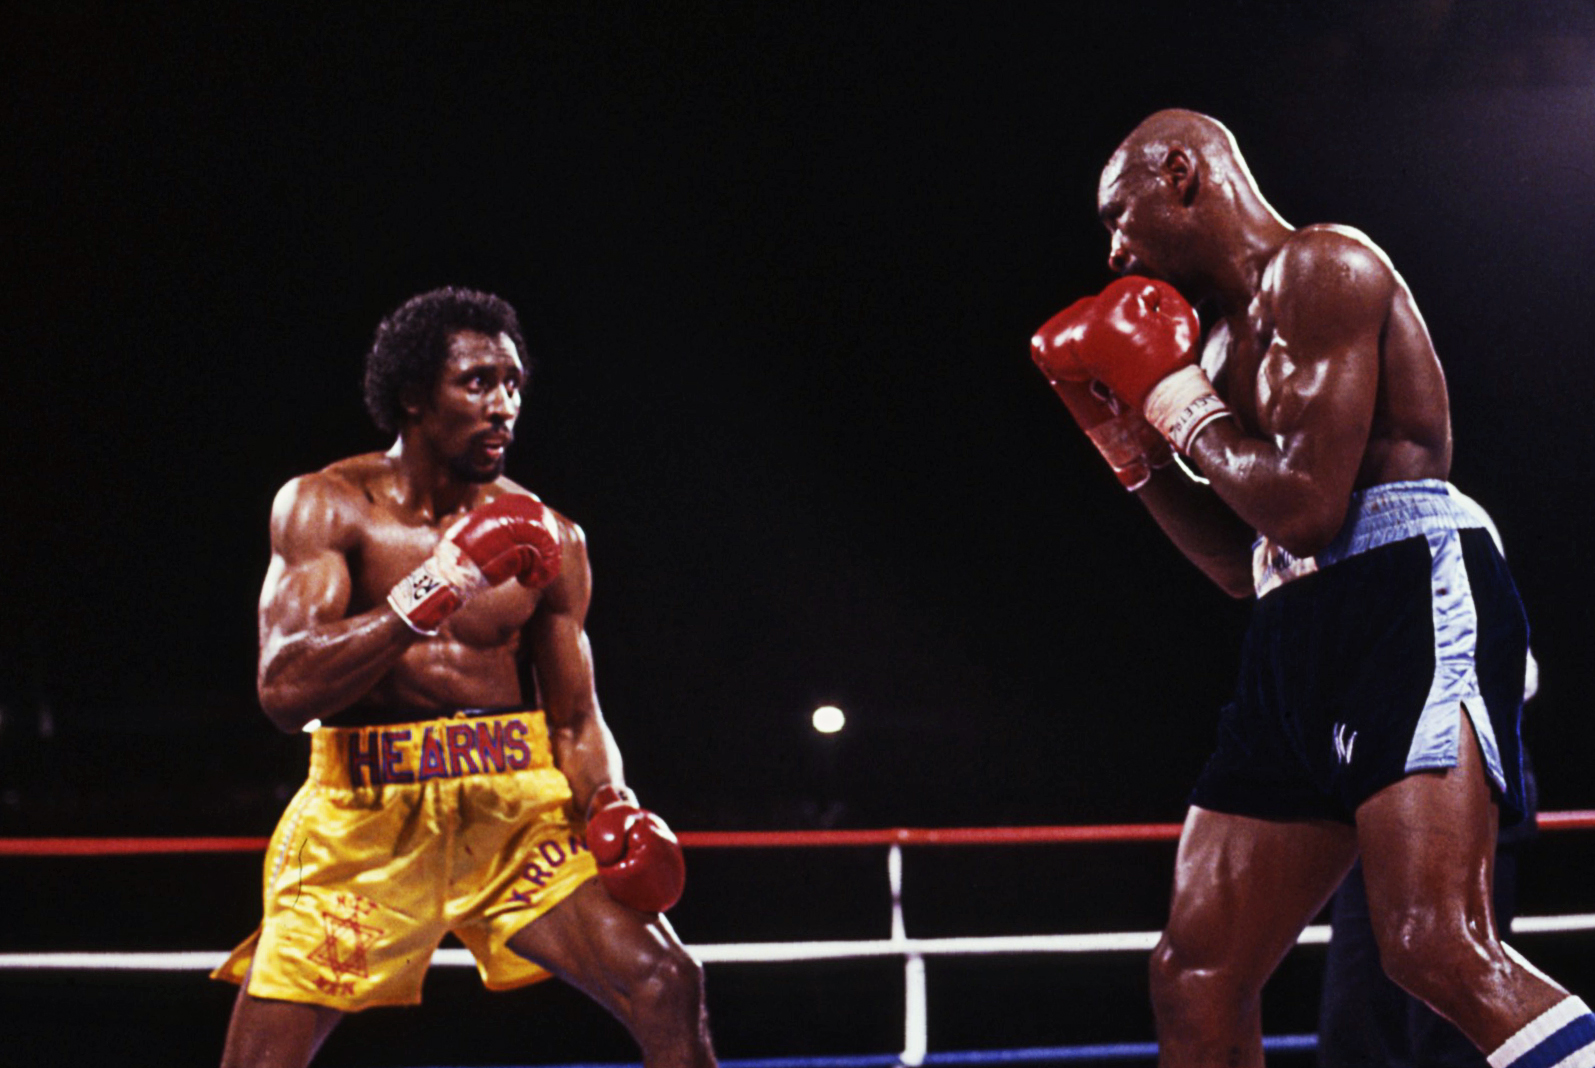 Hagler_v_Hearns_3.jpg